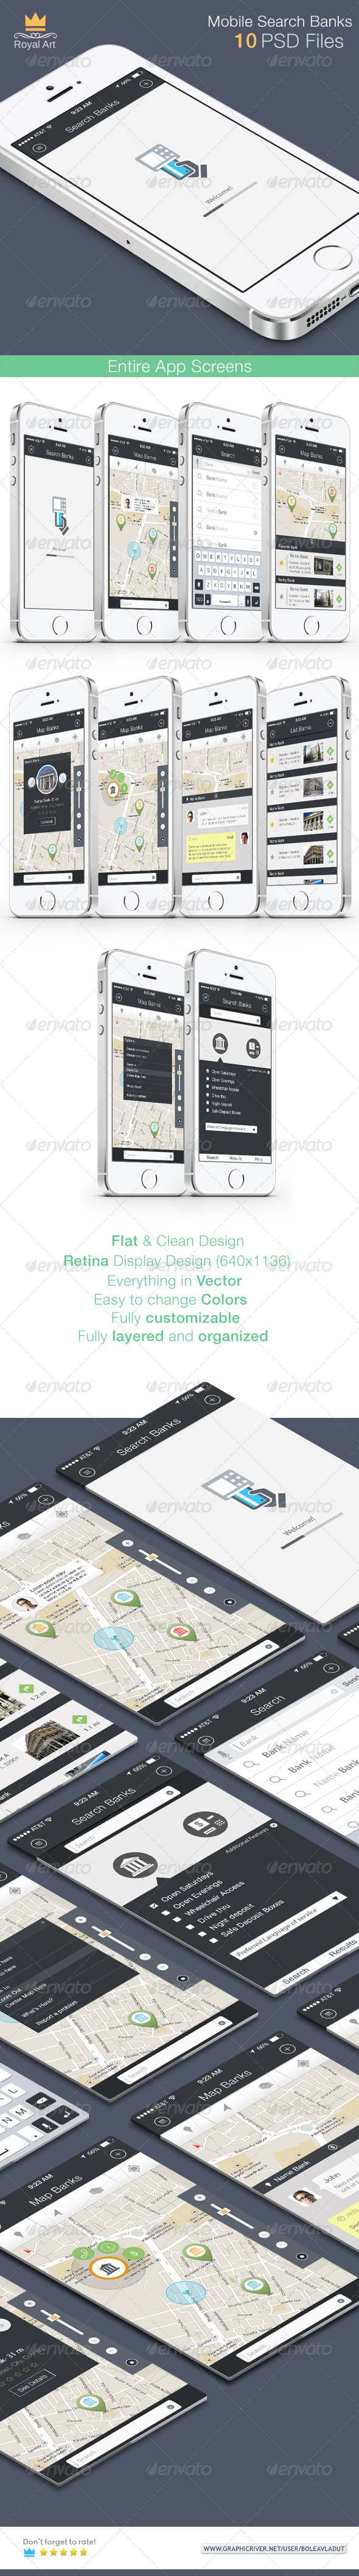 GraphicRiver Search Banks Mobile App 8247098